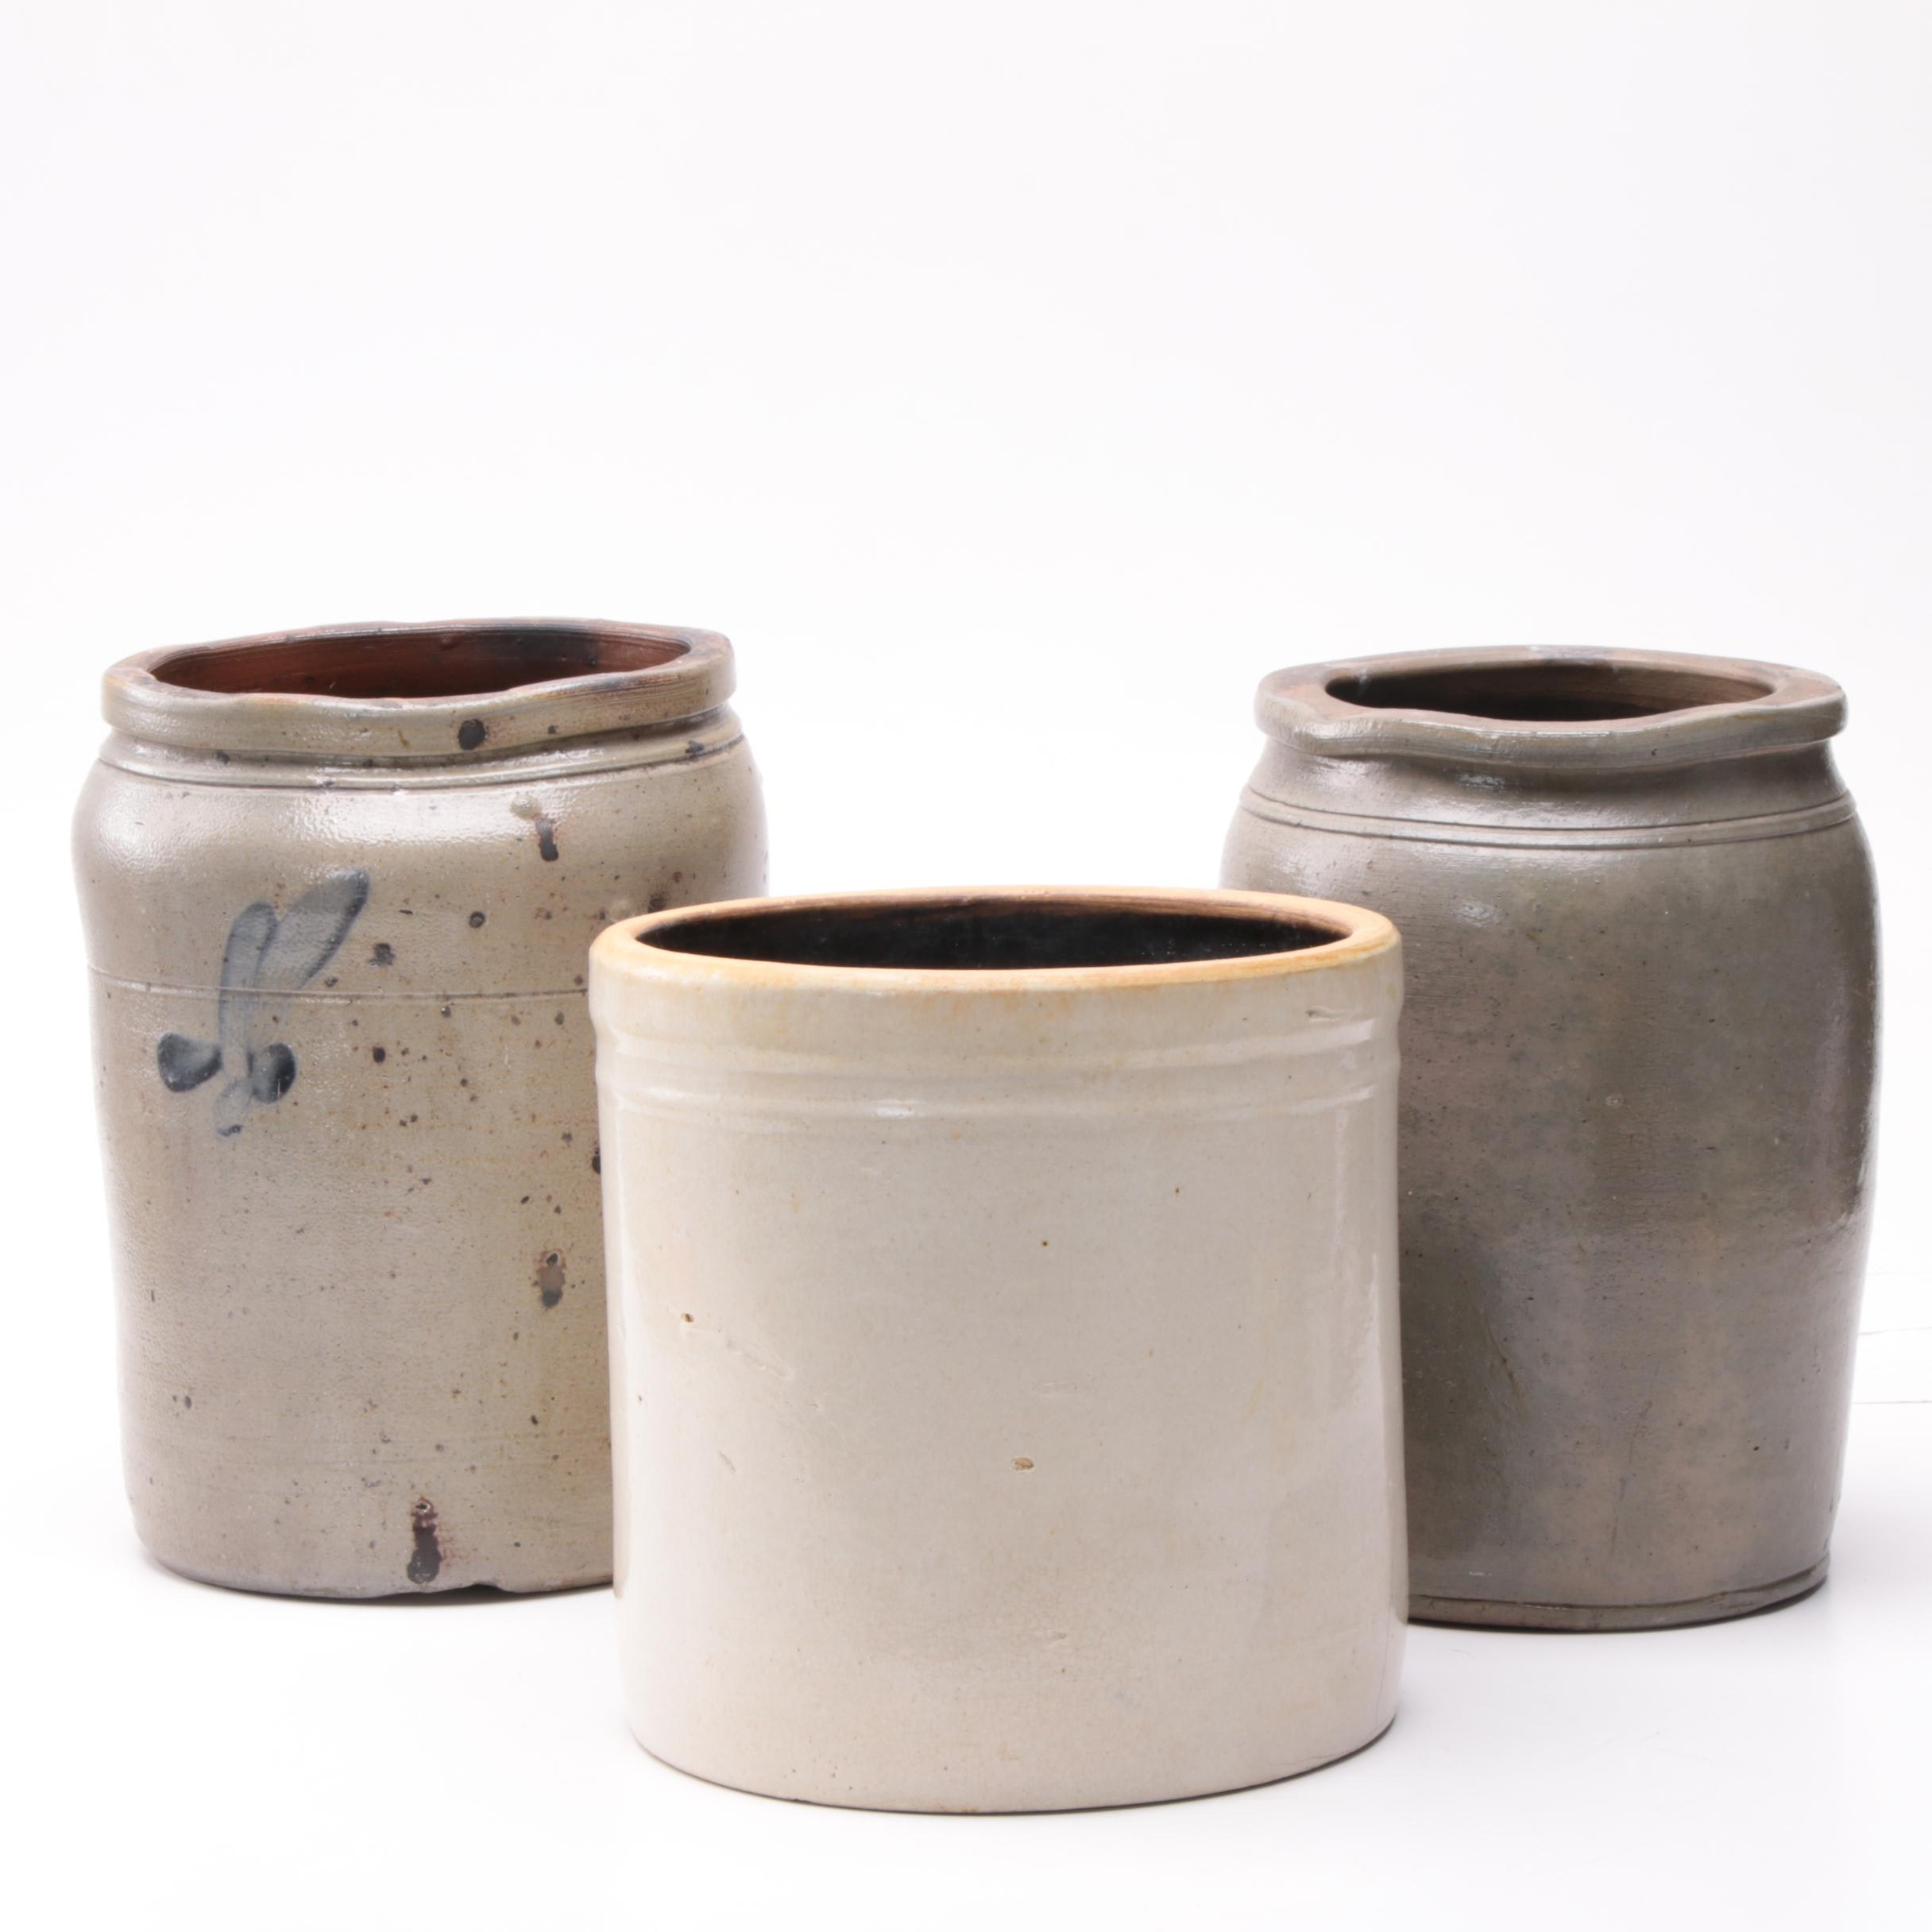 Vintage Salt and Slip Glazed Stoneware Crocks